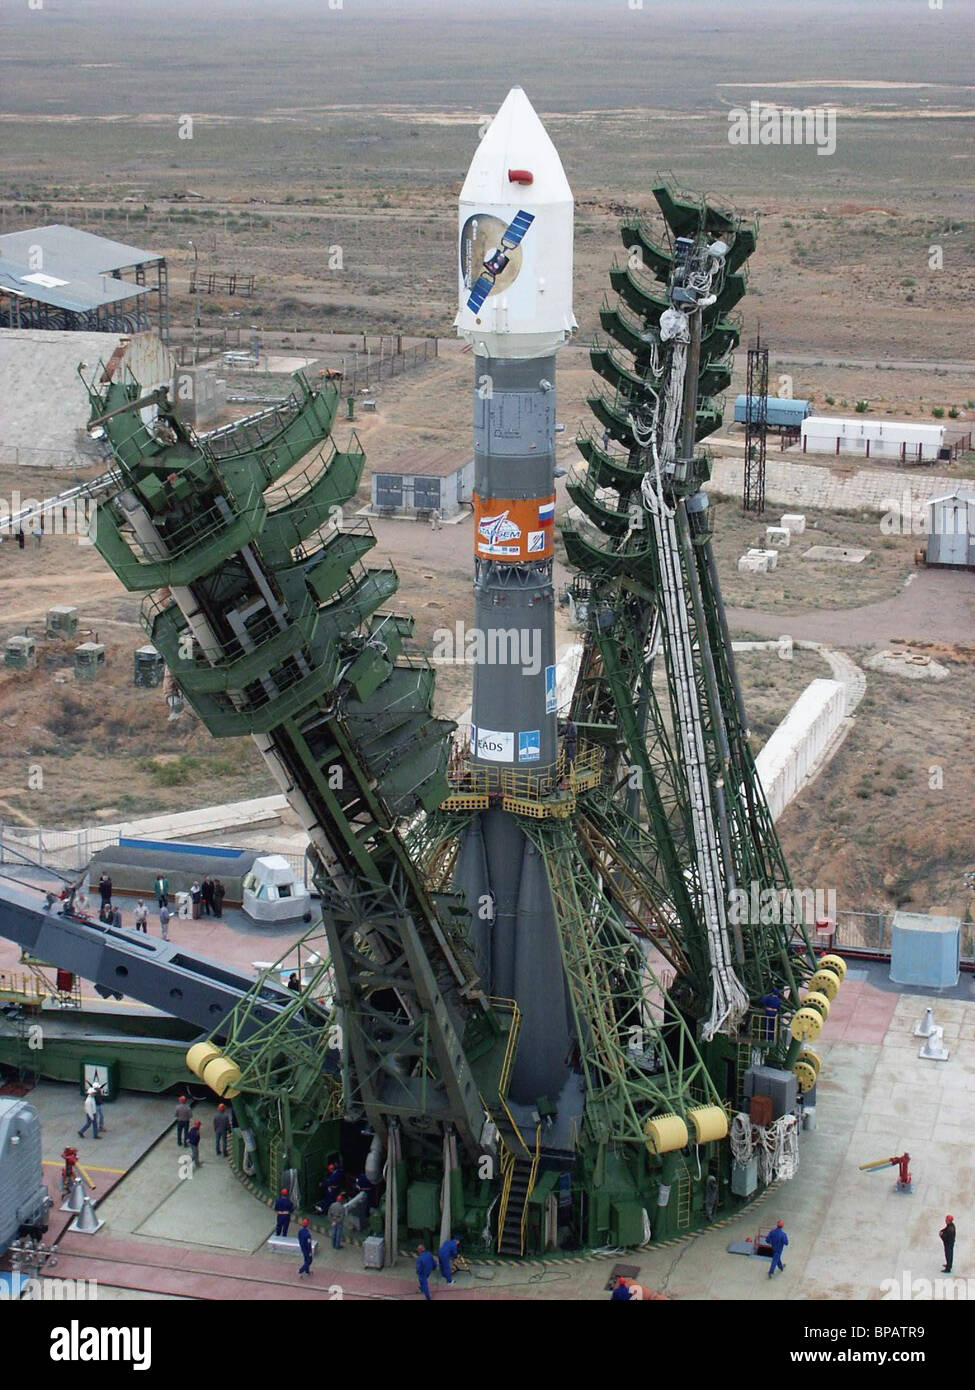 The Soyuz-FG carrier rocket with a Mars-Express interplanetary station was installed at a launch site at Baikonur - Stock Image